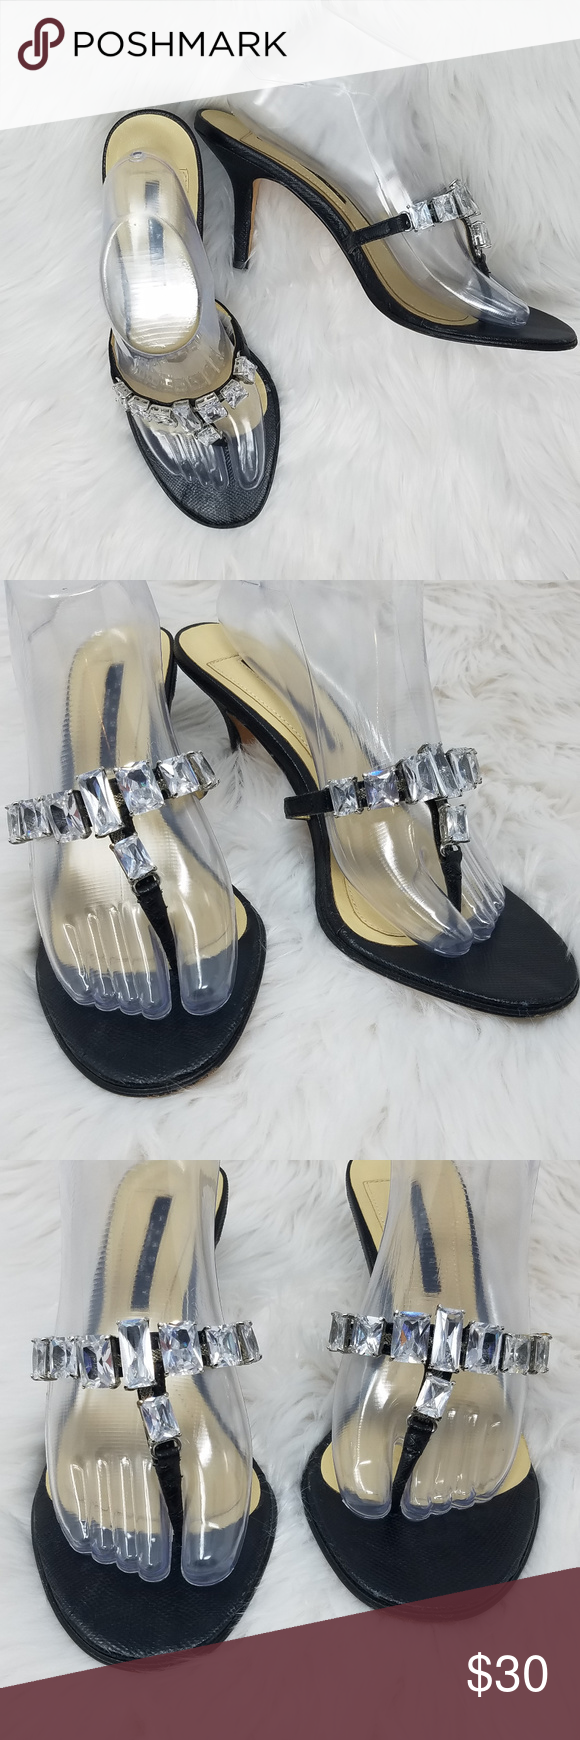 647de7b4e8b Laundry High Heel Sandals Bling 9M Thong Stiletto Heel Sandals. Very good  condition. Heel 3 inches Laundry By Shelli Segal Shoes Sandals